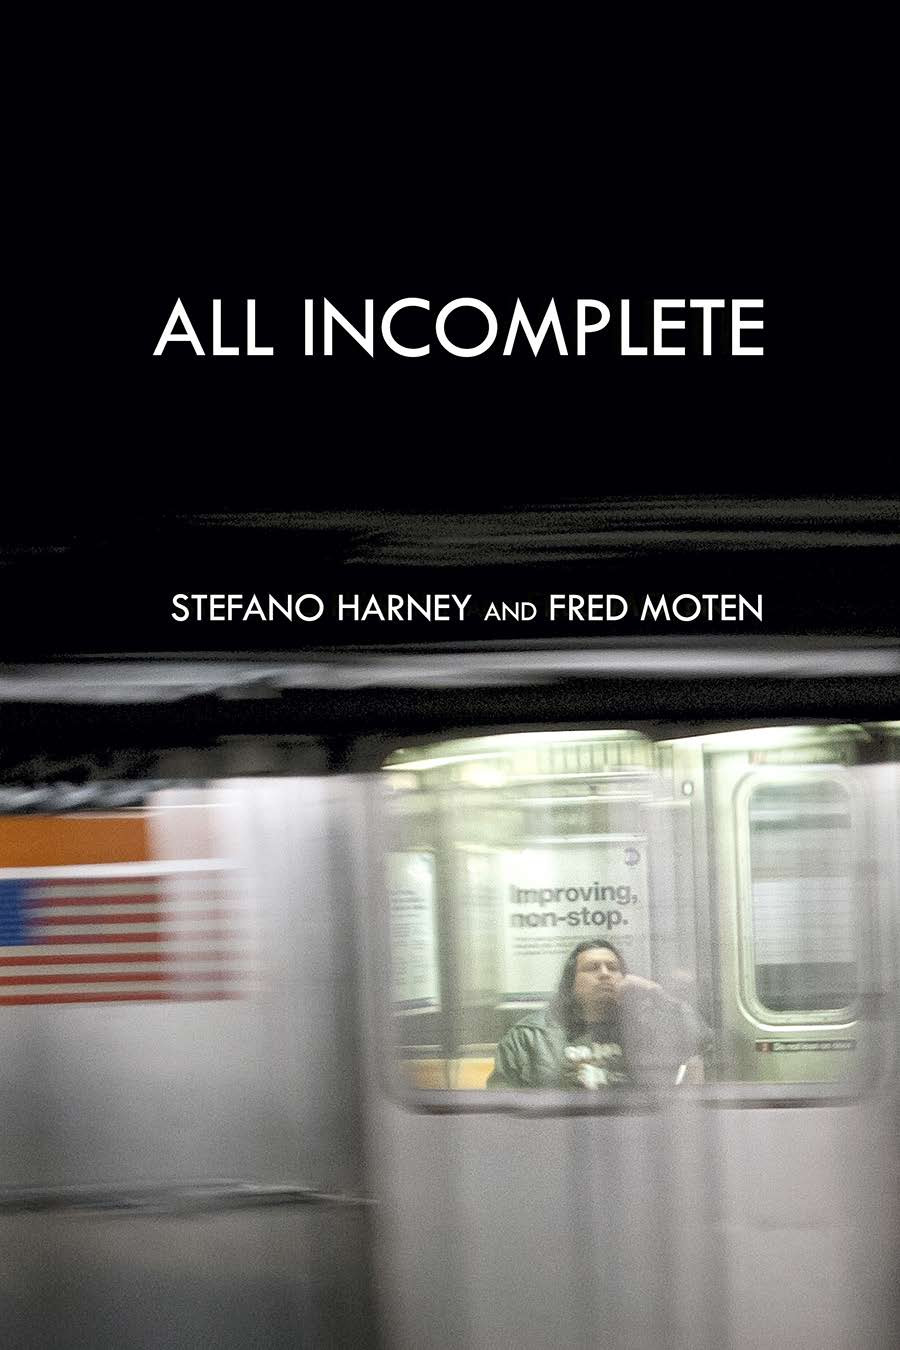 Stefano Harney, Fred Moten: All Incomplete (2021)